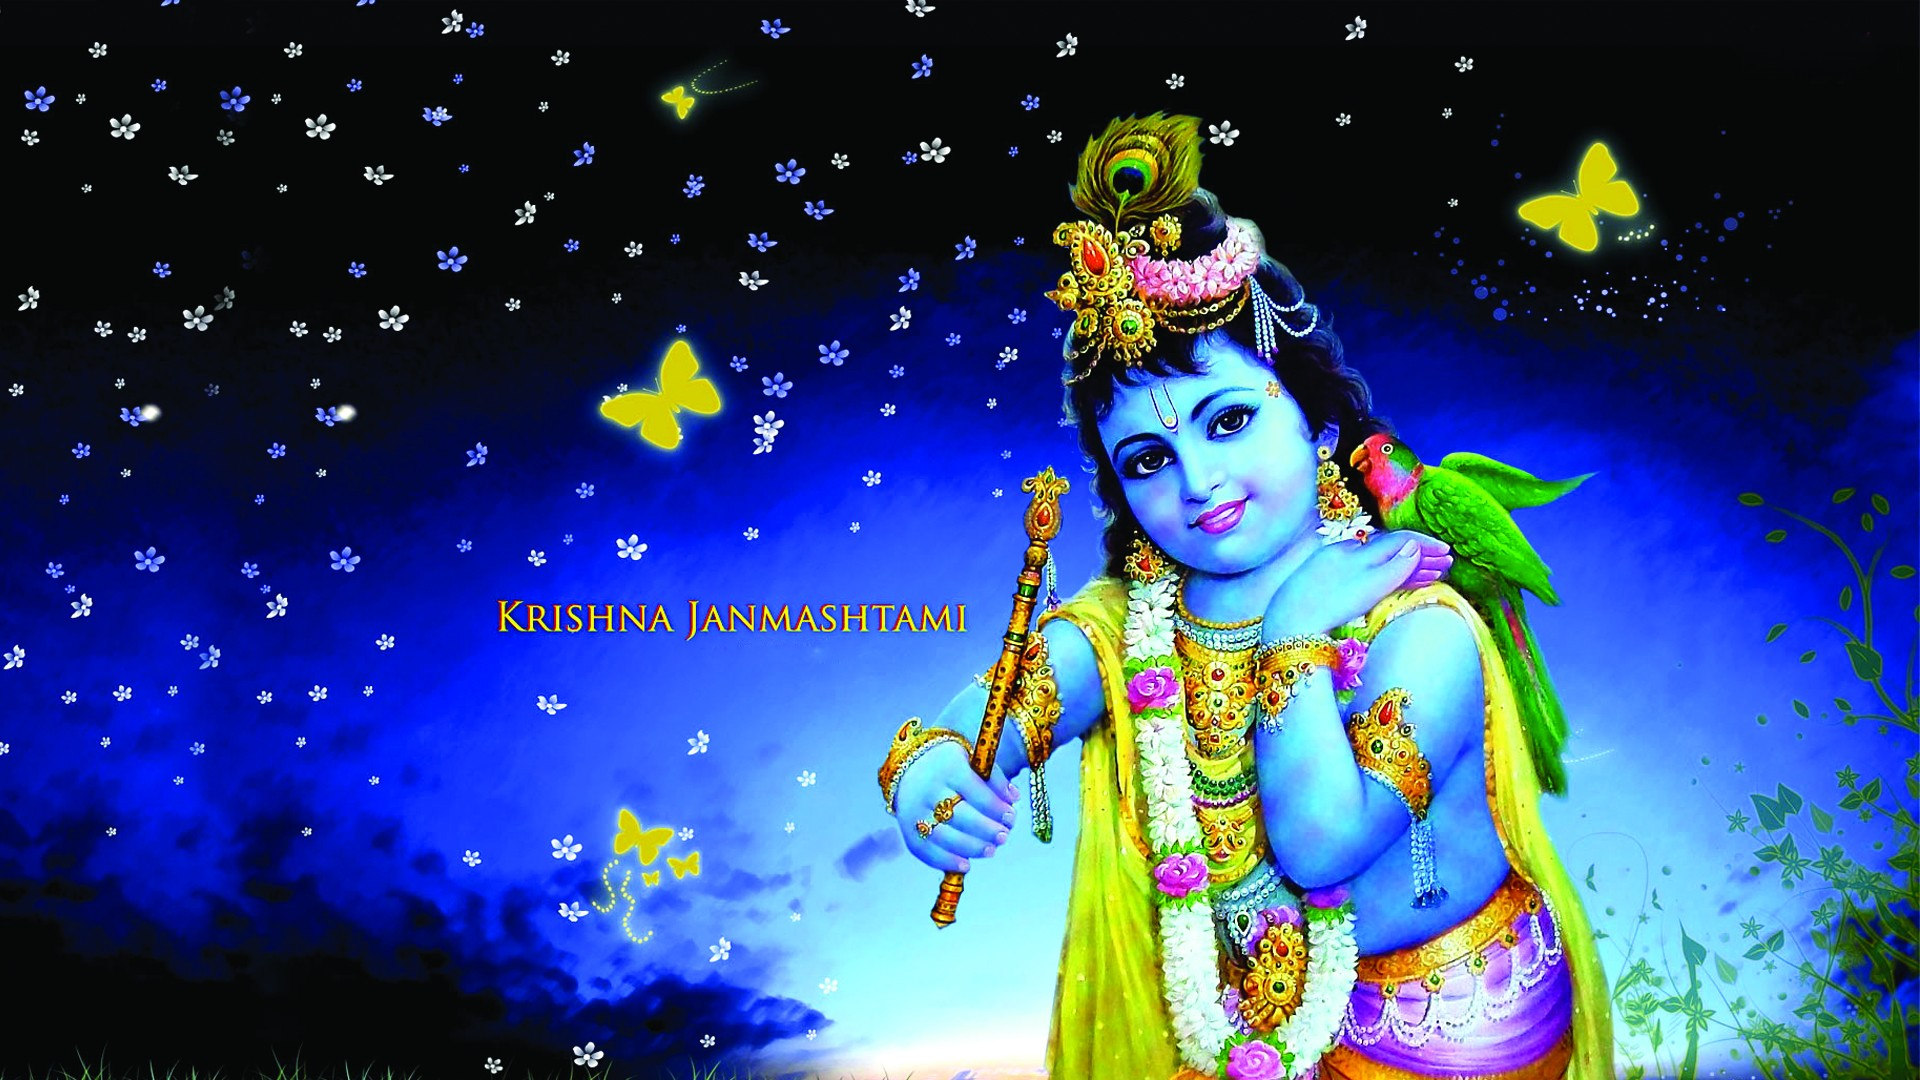 Shri Krishna Janmashtami Special : 10 Songs Bhajan Whatsapp Hd Video Bollywood